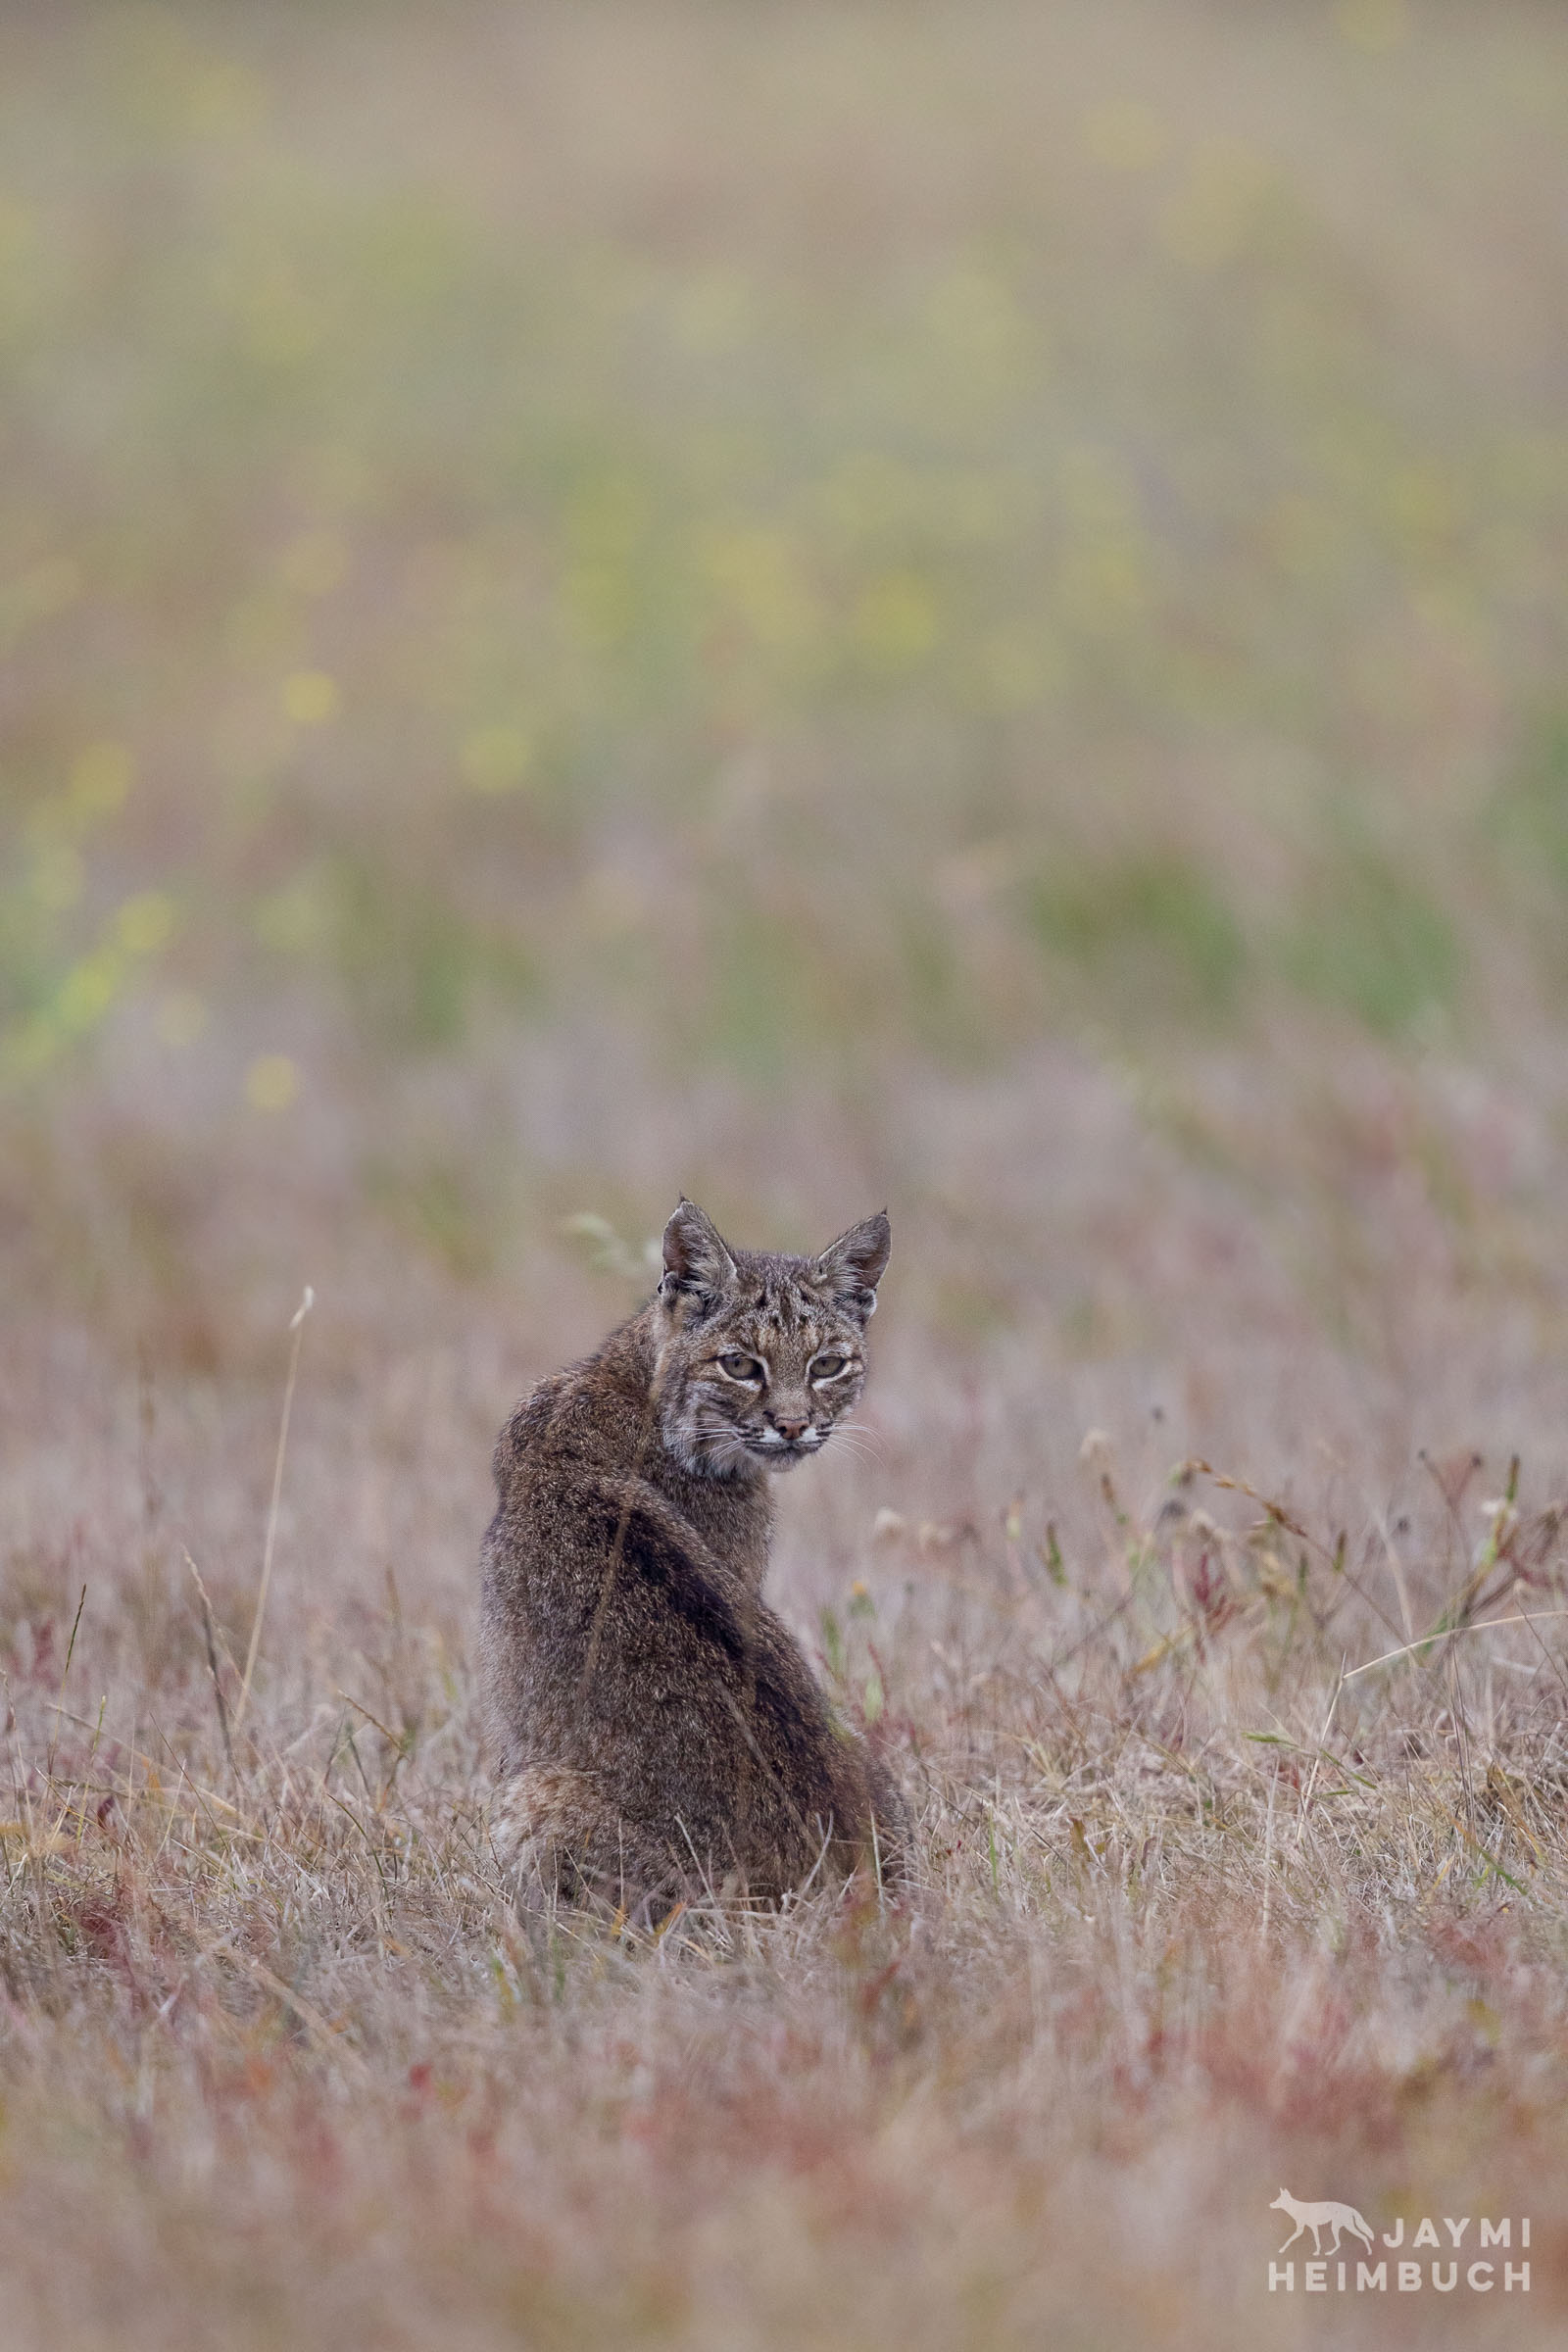 A bobcat sits in a field early on a foggy morning.